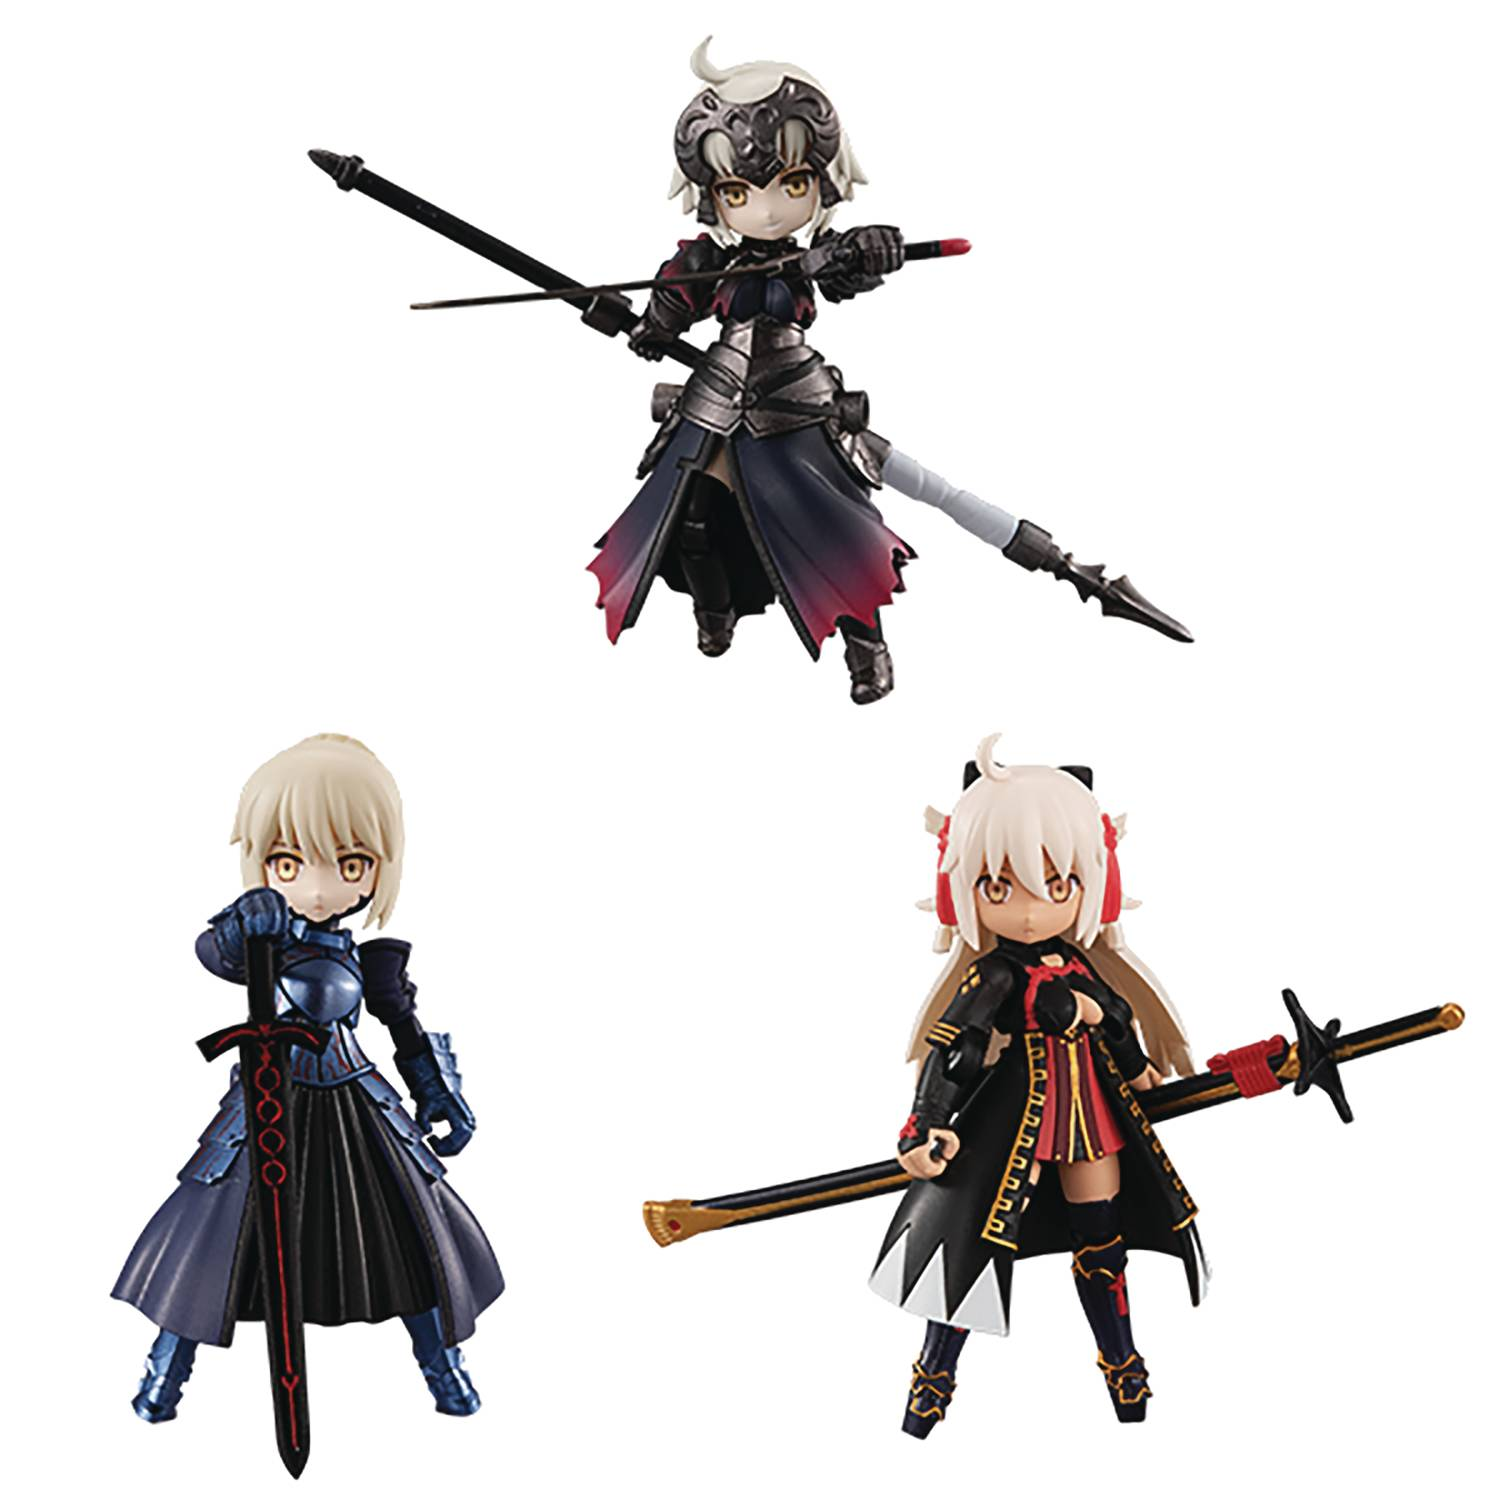 DESKTOP ARMY FATE GRAND ORDER NO 4 3PC DISPLAY